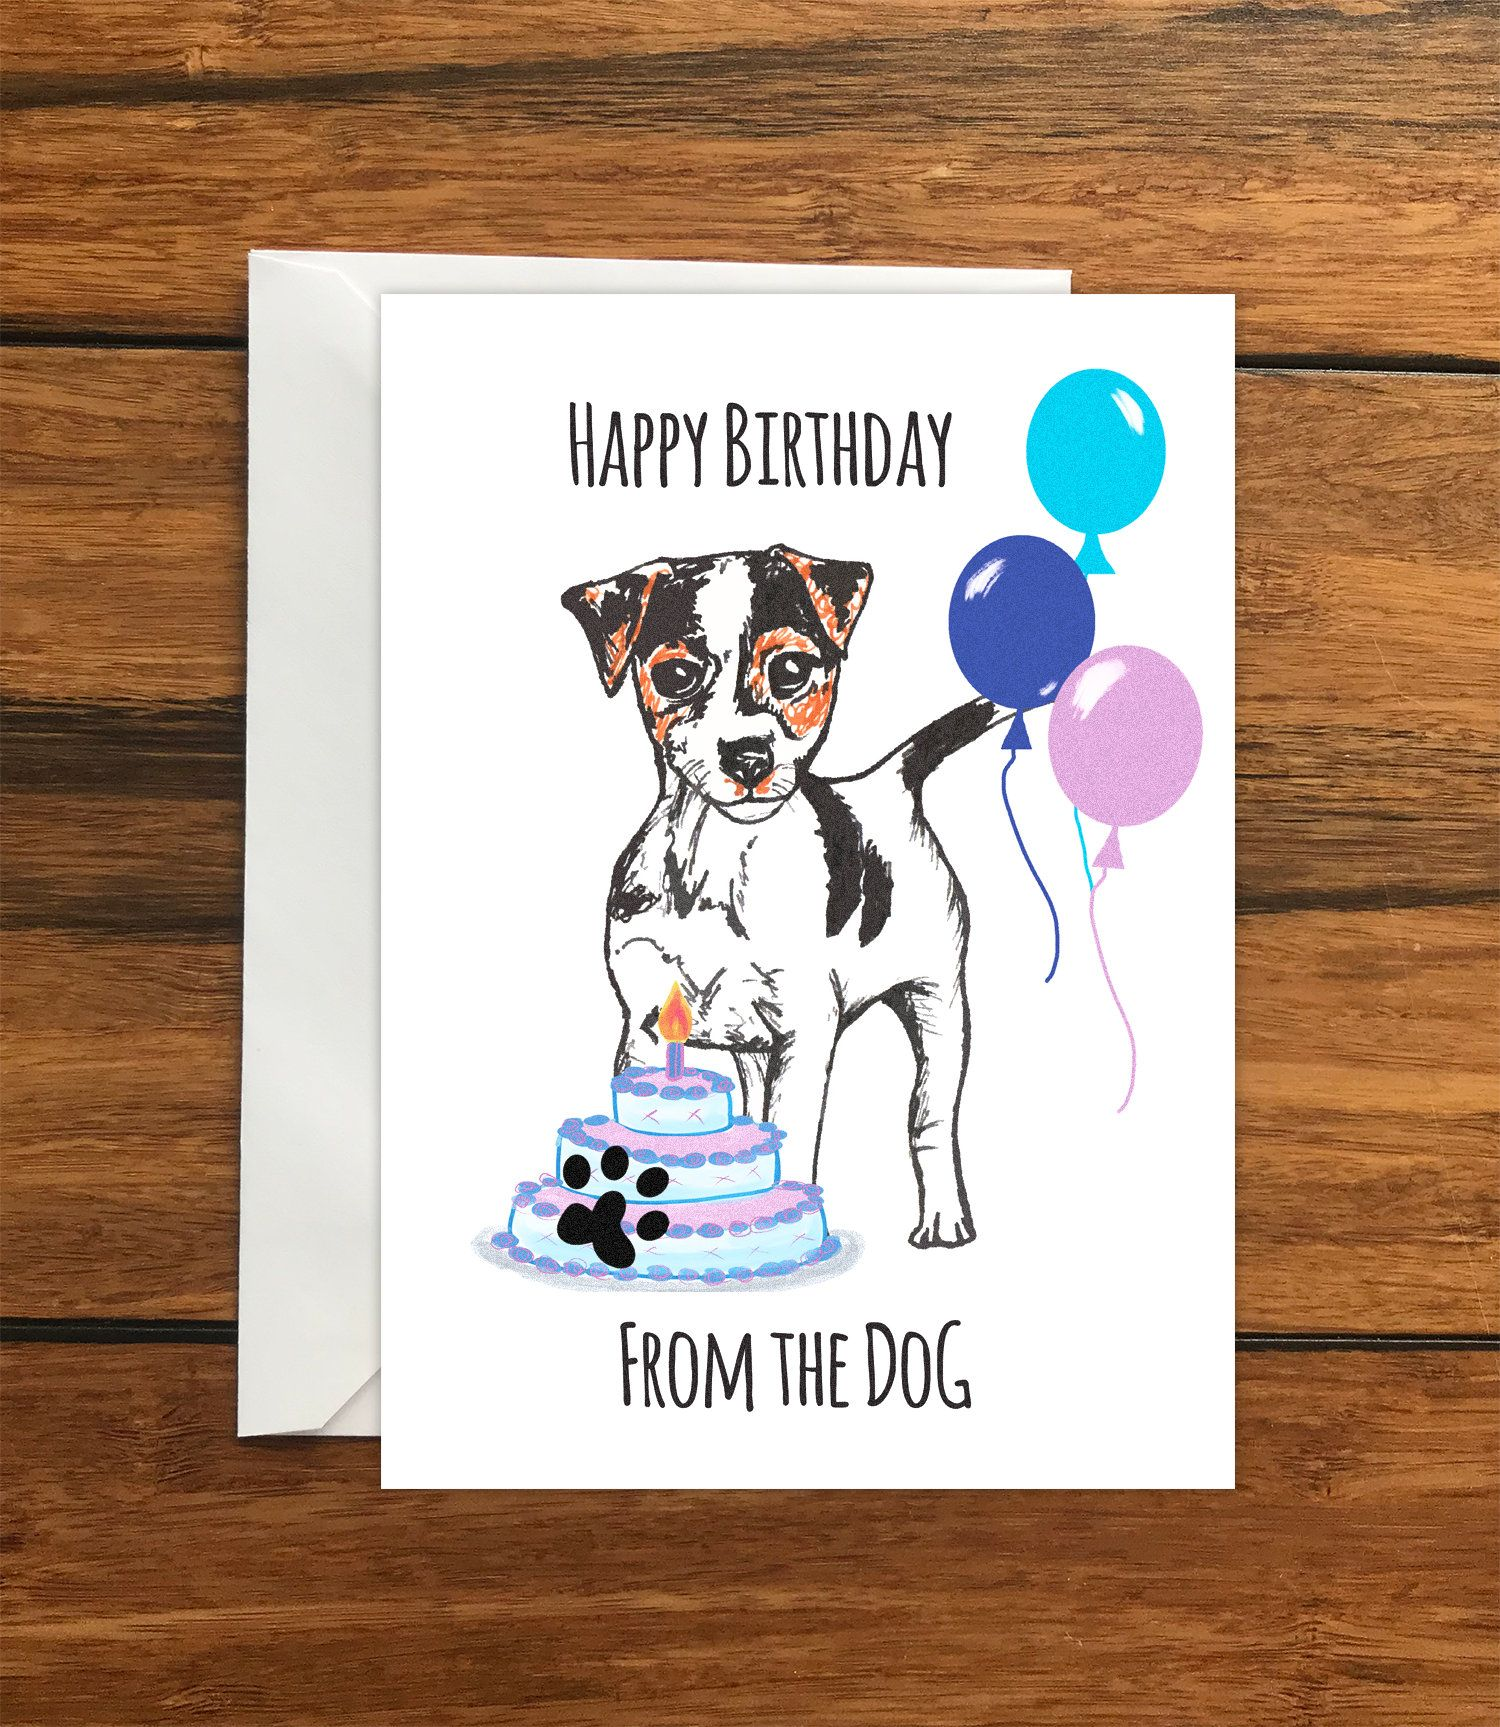 Happy Birthday From the Dog! Jack Russell, Terrier